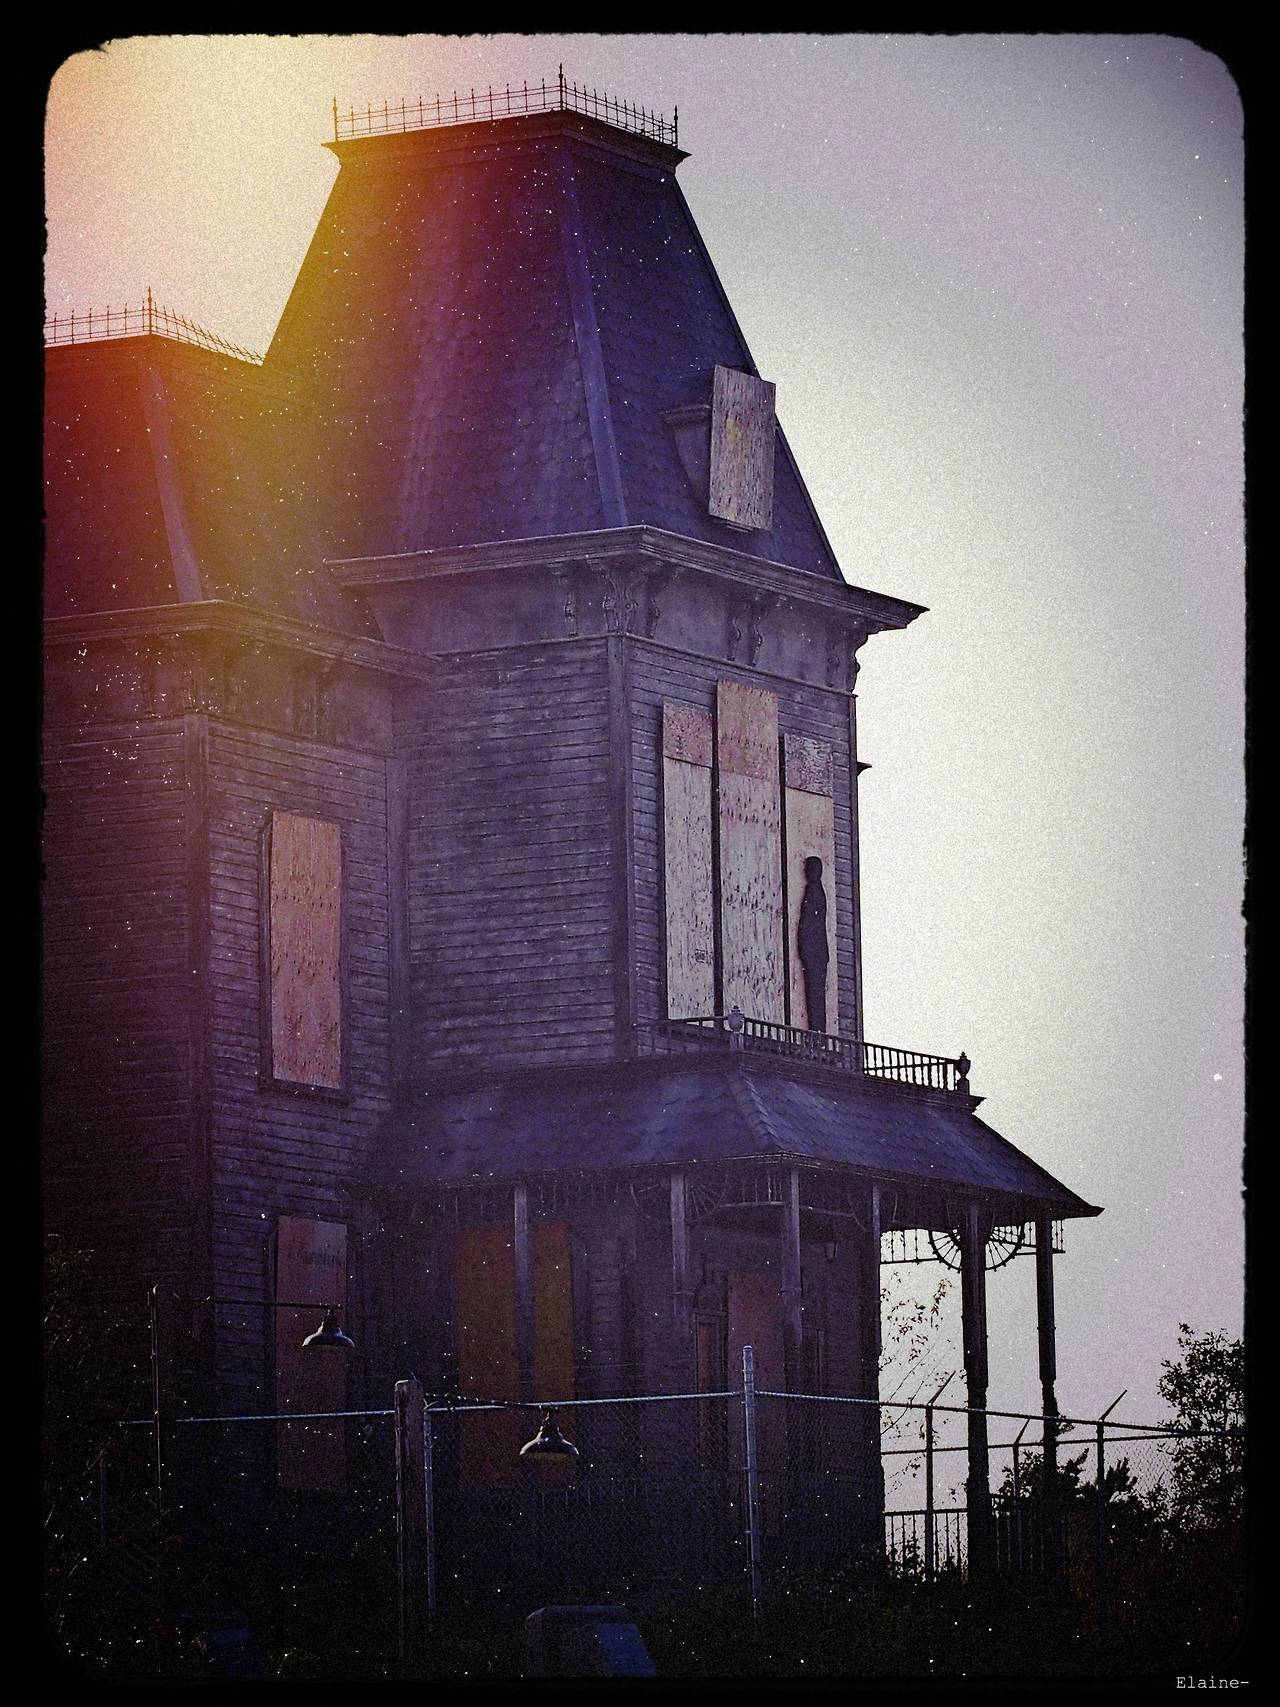 Psycho, Mother's House